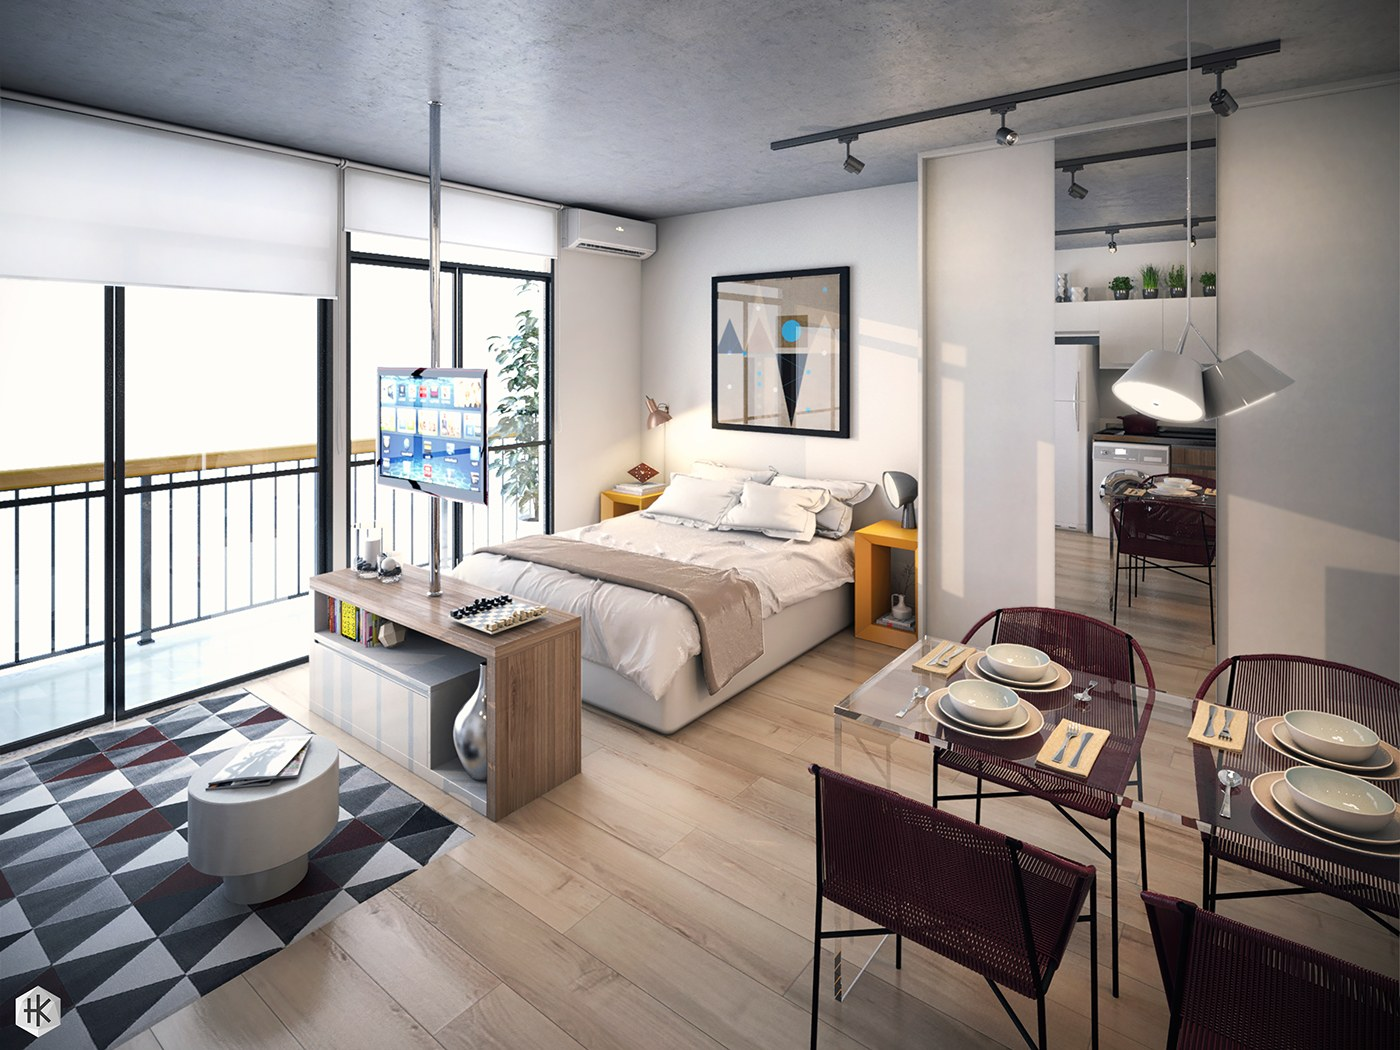 5 small studio apartments with beautiful design - Interior design studio ...